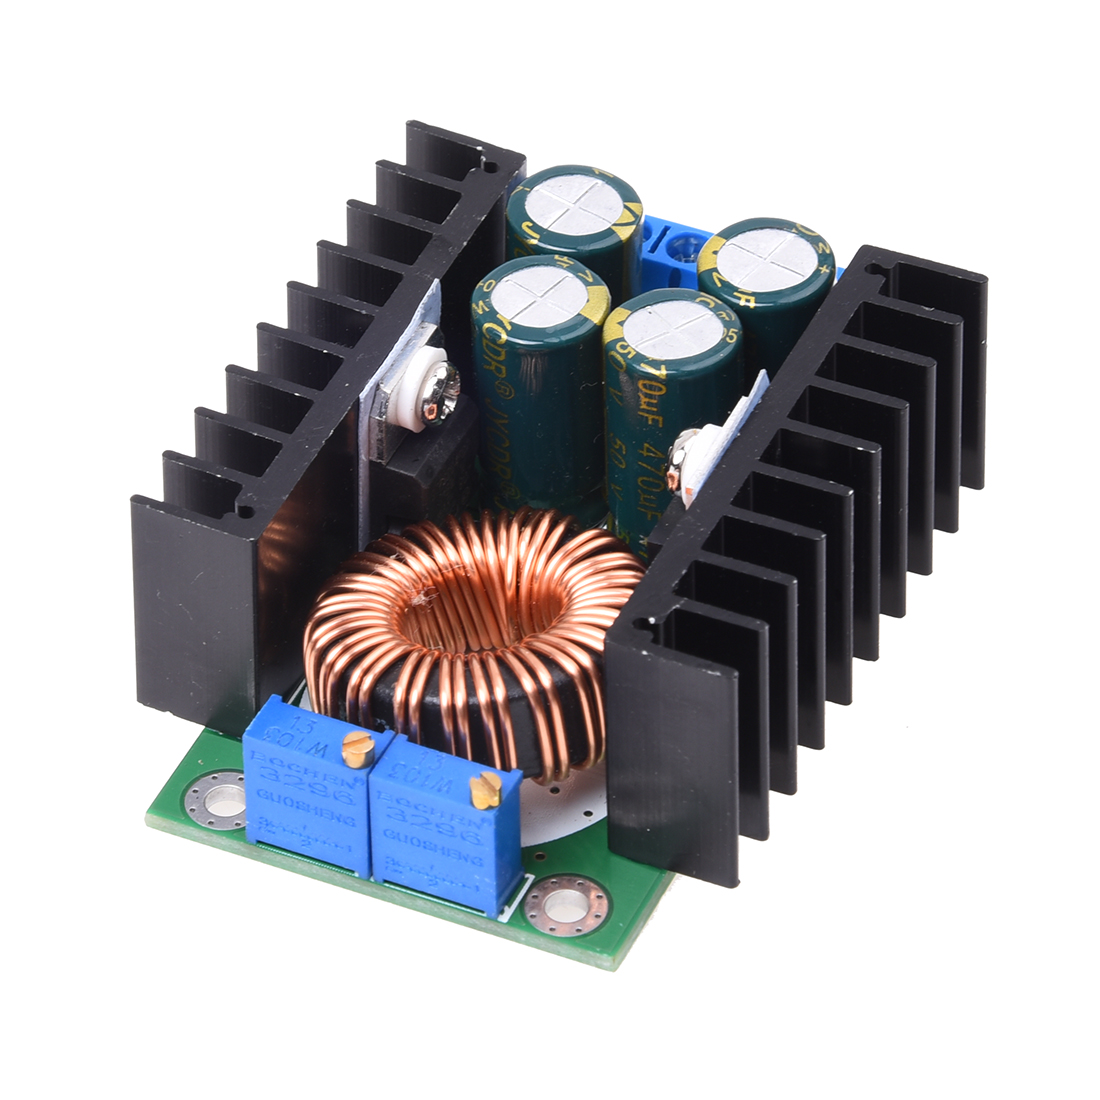 DC-DC CC CV Buck Converter Step-down Power Module 7-32V to 0.8-28V 12300WDC-DC CC CV Buck Converter Step-down Power Module 7-32V to 0.8-28V 12300W